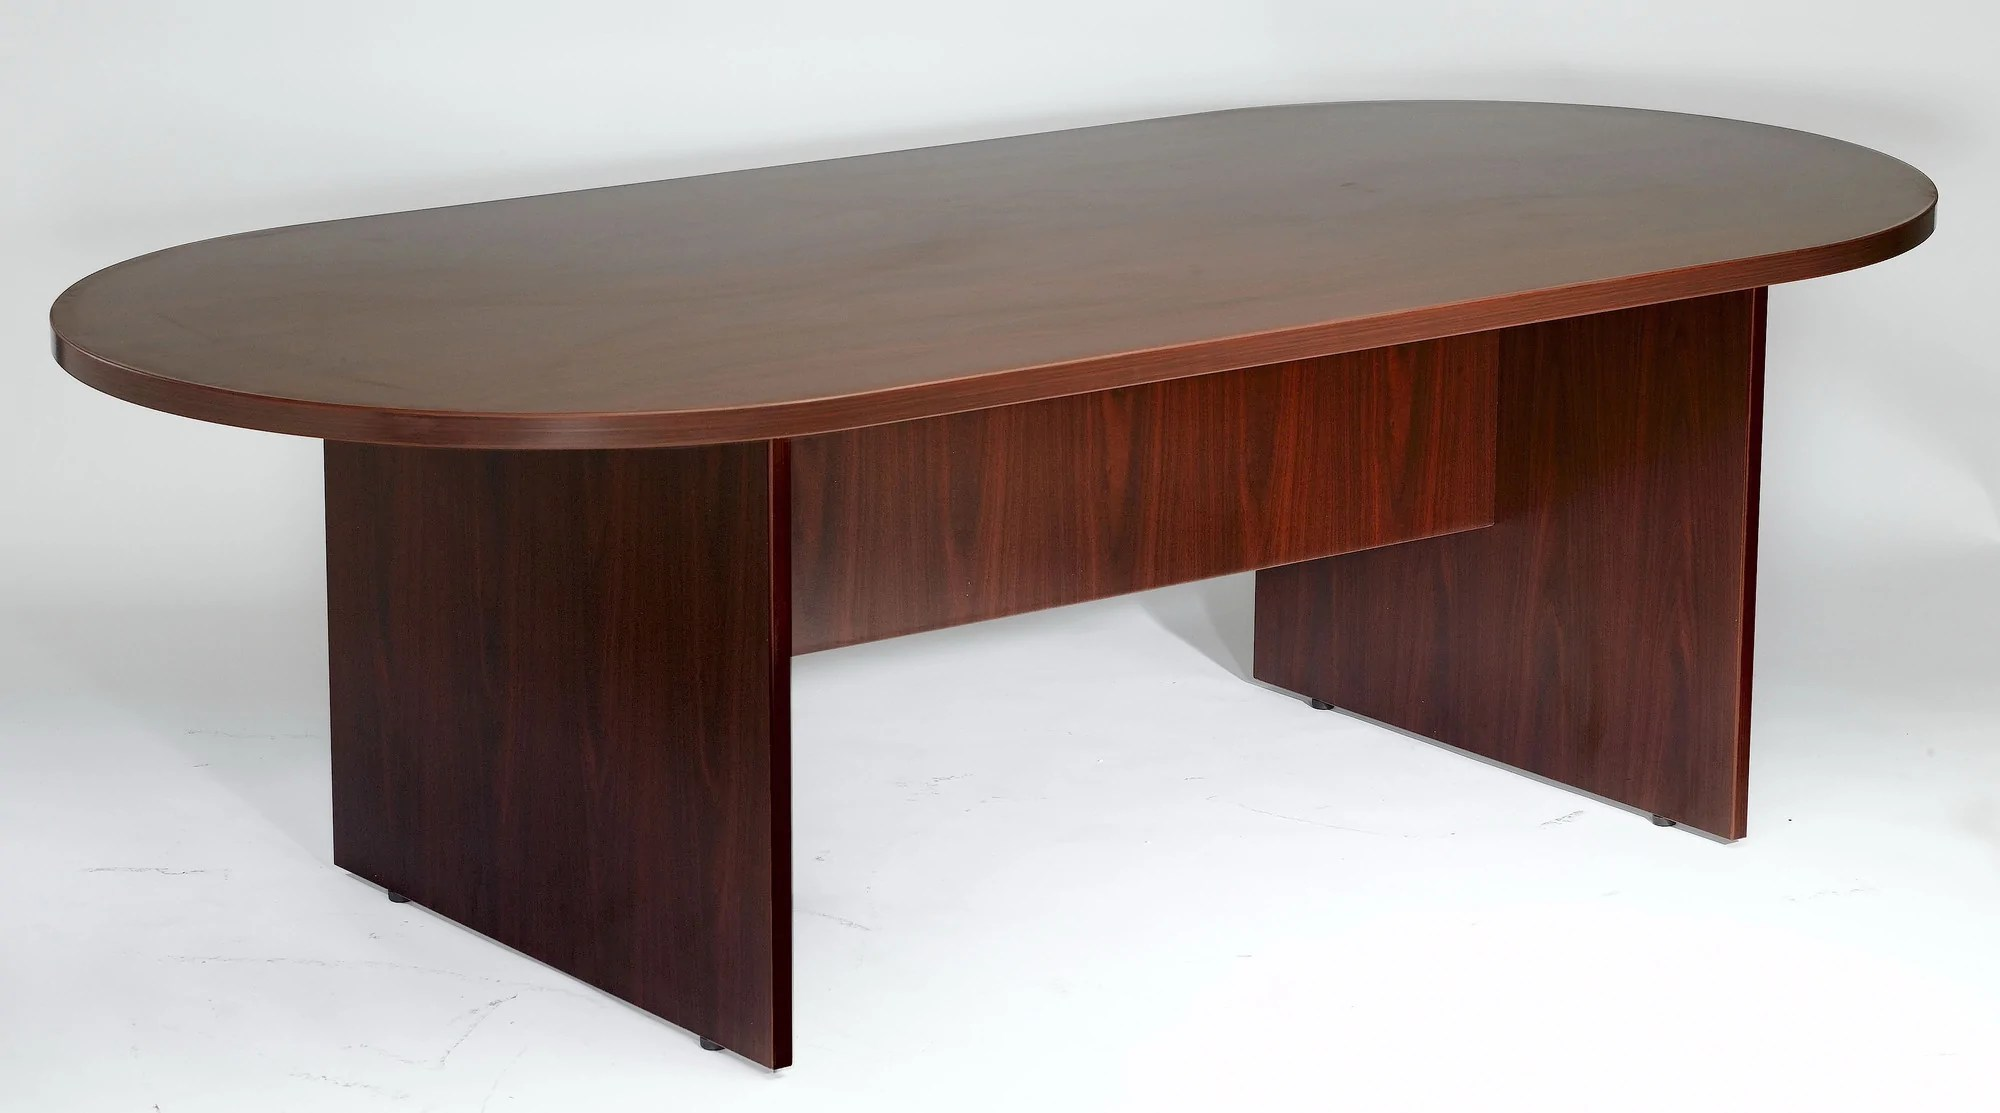 Mahogany Office Desk Contemporary Conference Table In Cherry Or Mahogany Available In 6 8 Or 10